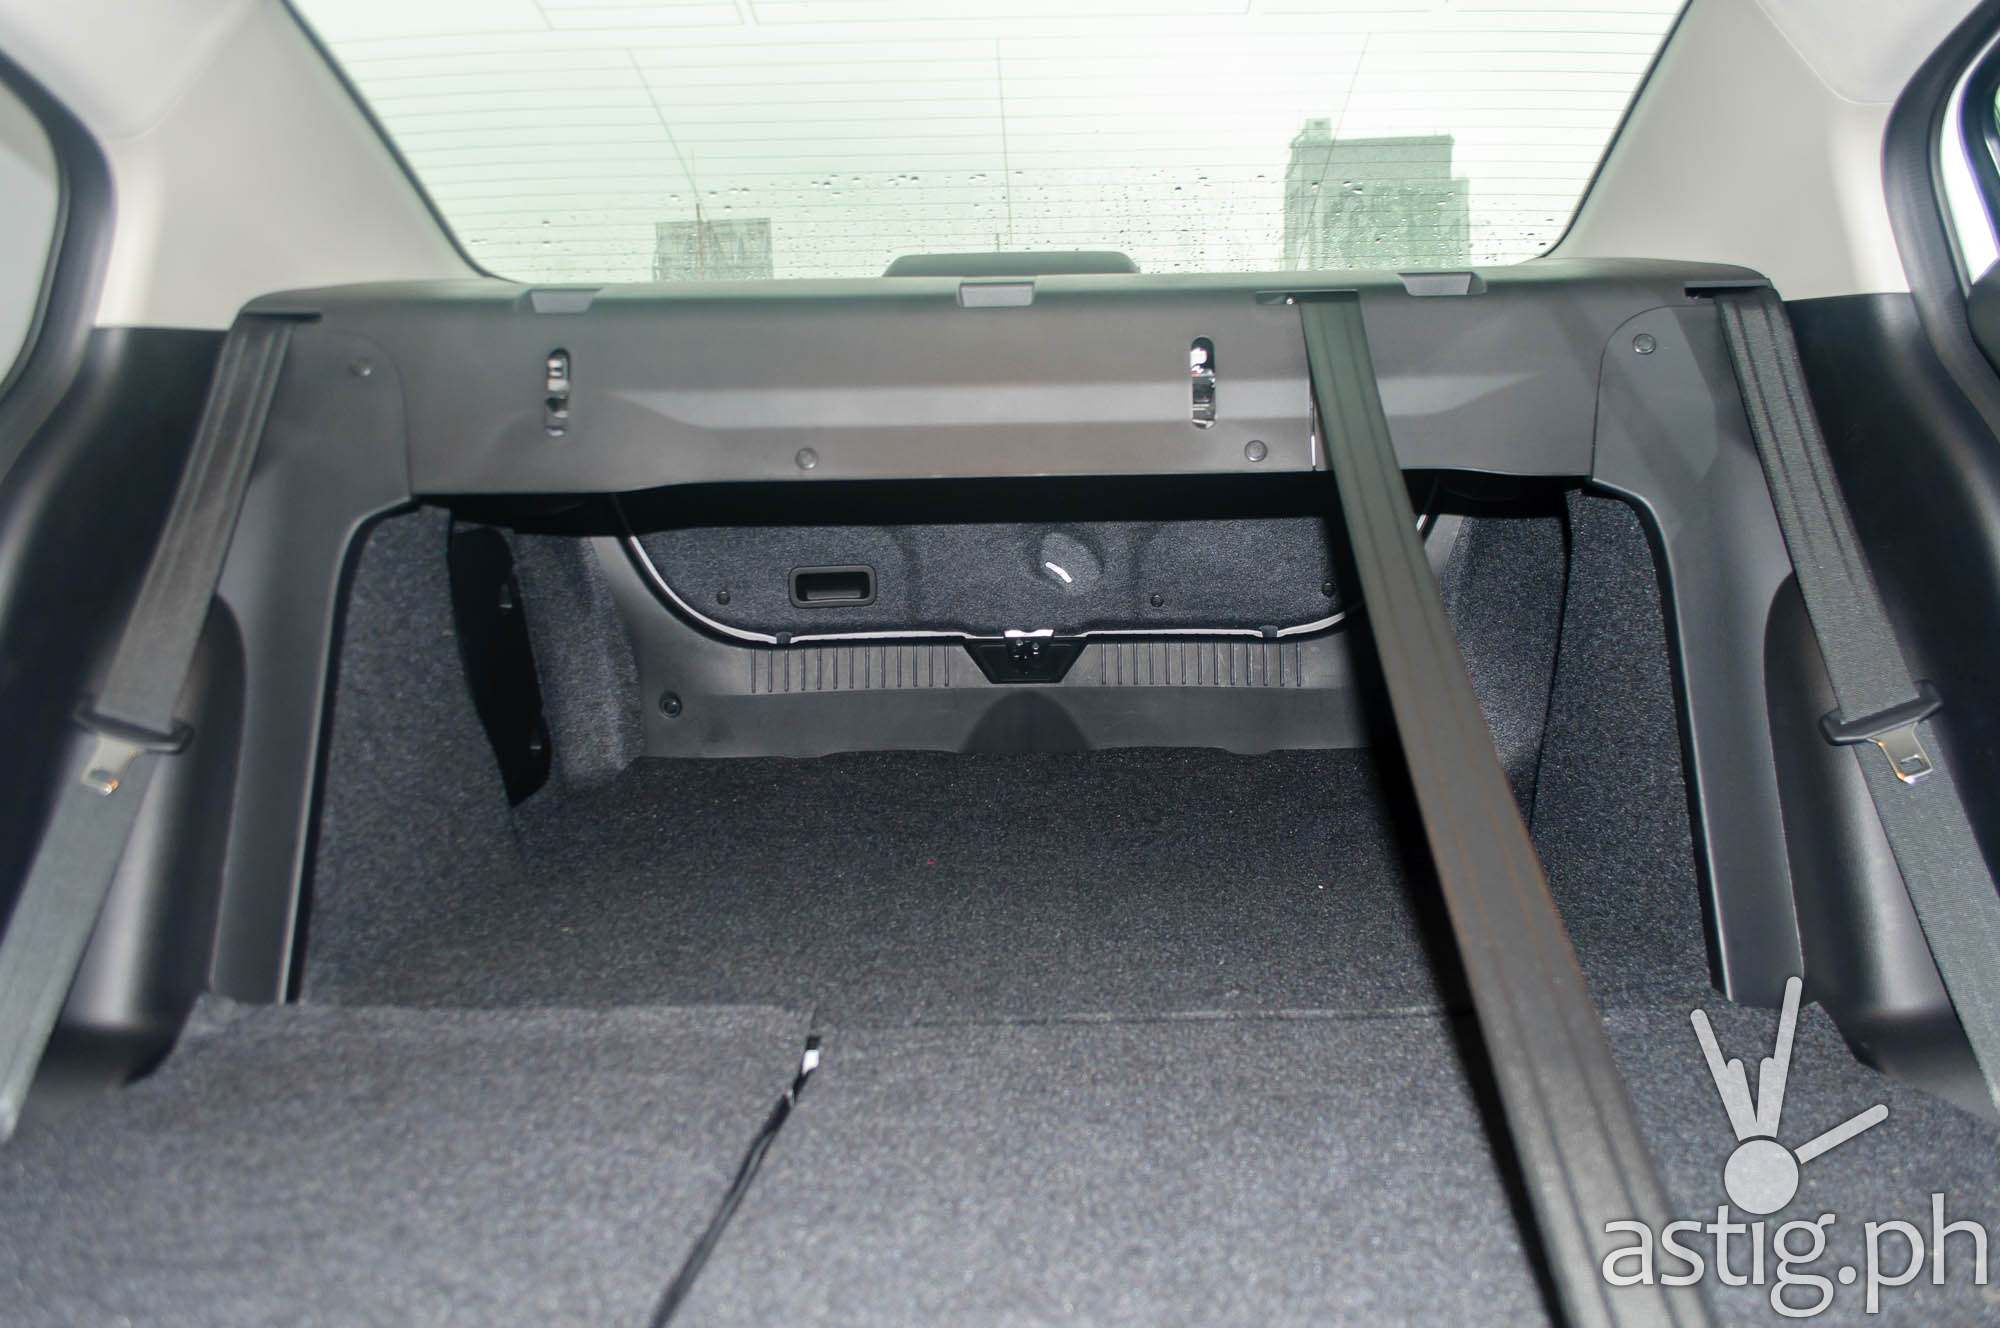 Inside shot showing the extended storage space on the Mazda3 Sedan with the rear seats folded down